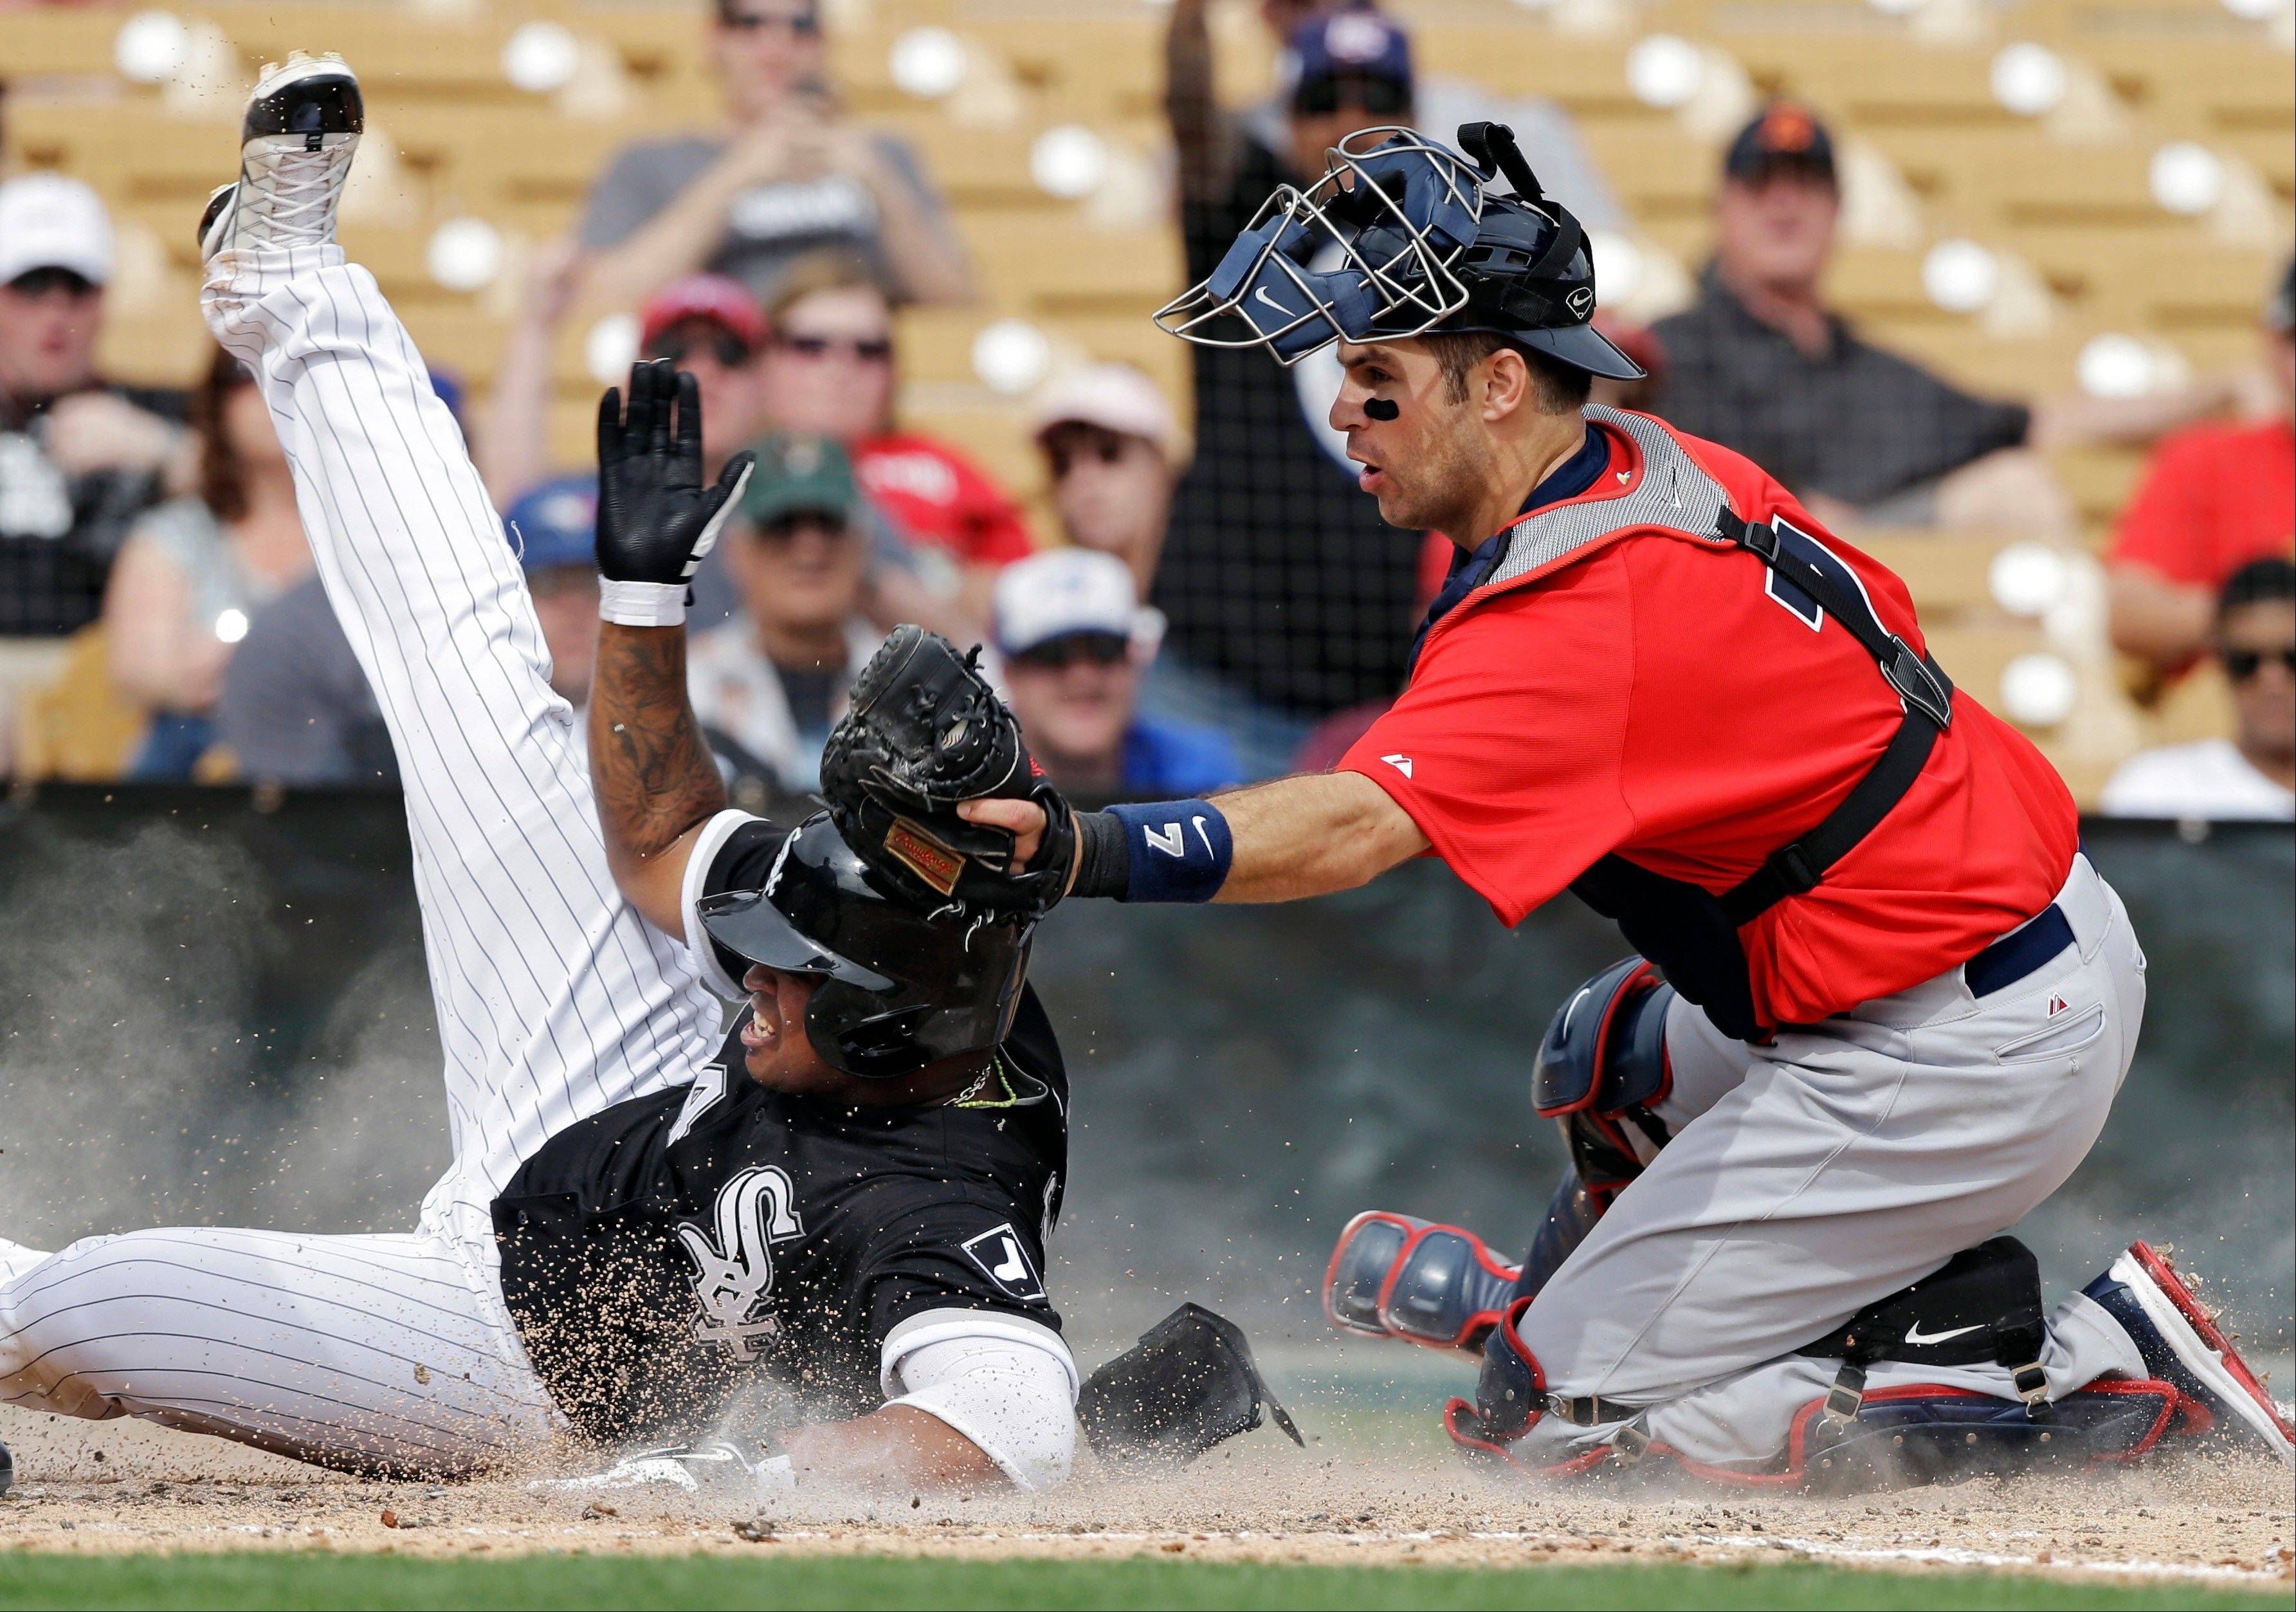 United States catcher Joe Mauer, right, tags out Chicago White Sox's Dayan Viciedo trying to score from second on a single by Gordon Beckham in the fourth inning of an exhibition baseball game Tuesday, March 5, 2013, in Glendale, Ariz. The game is the first of two exhibitions the United States will play leading up the the start of the World Baseball Classic. (AP Photo/Mark Duncan)